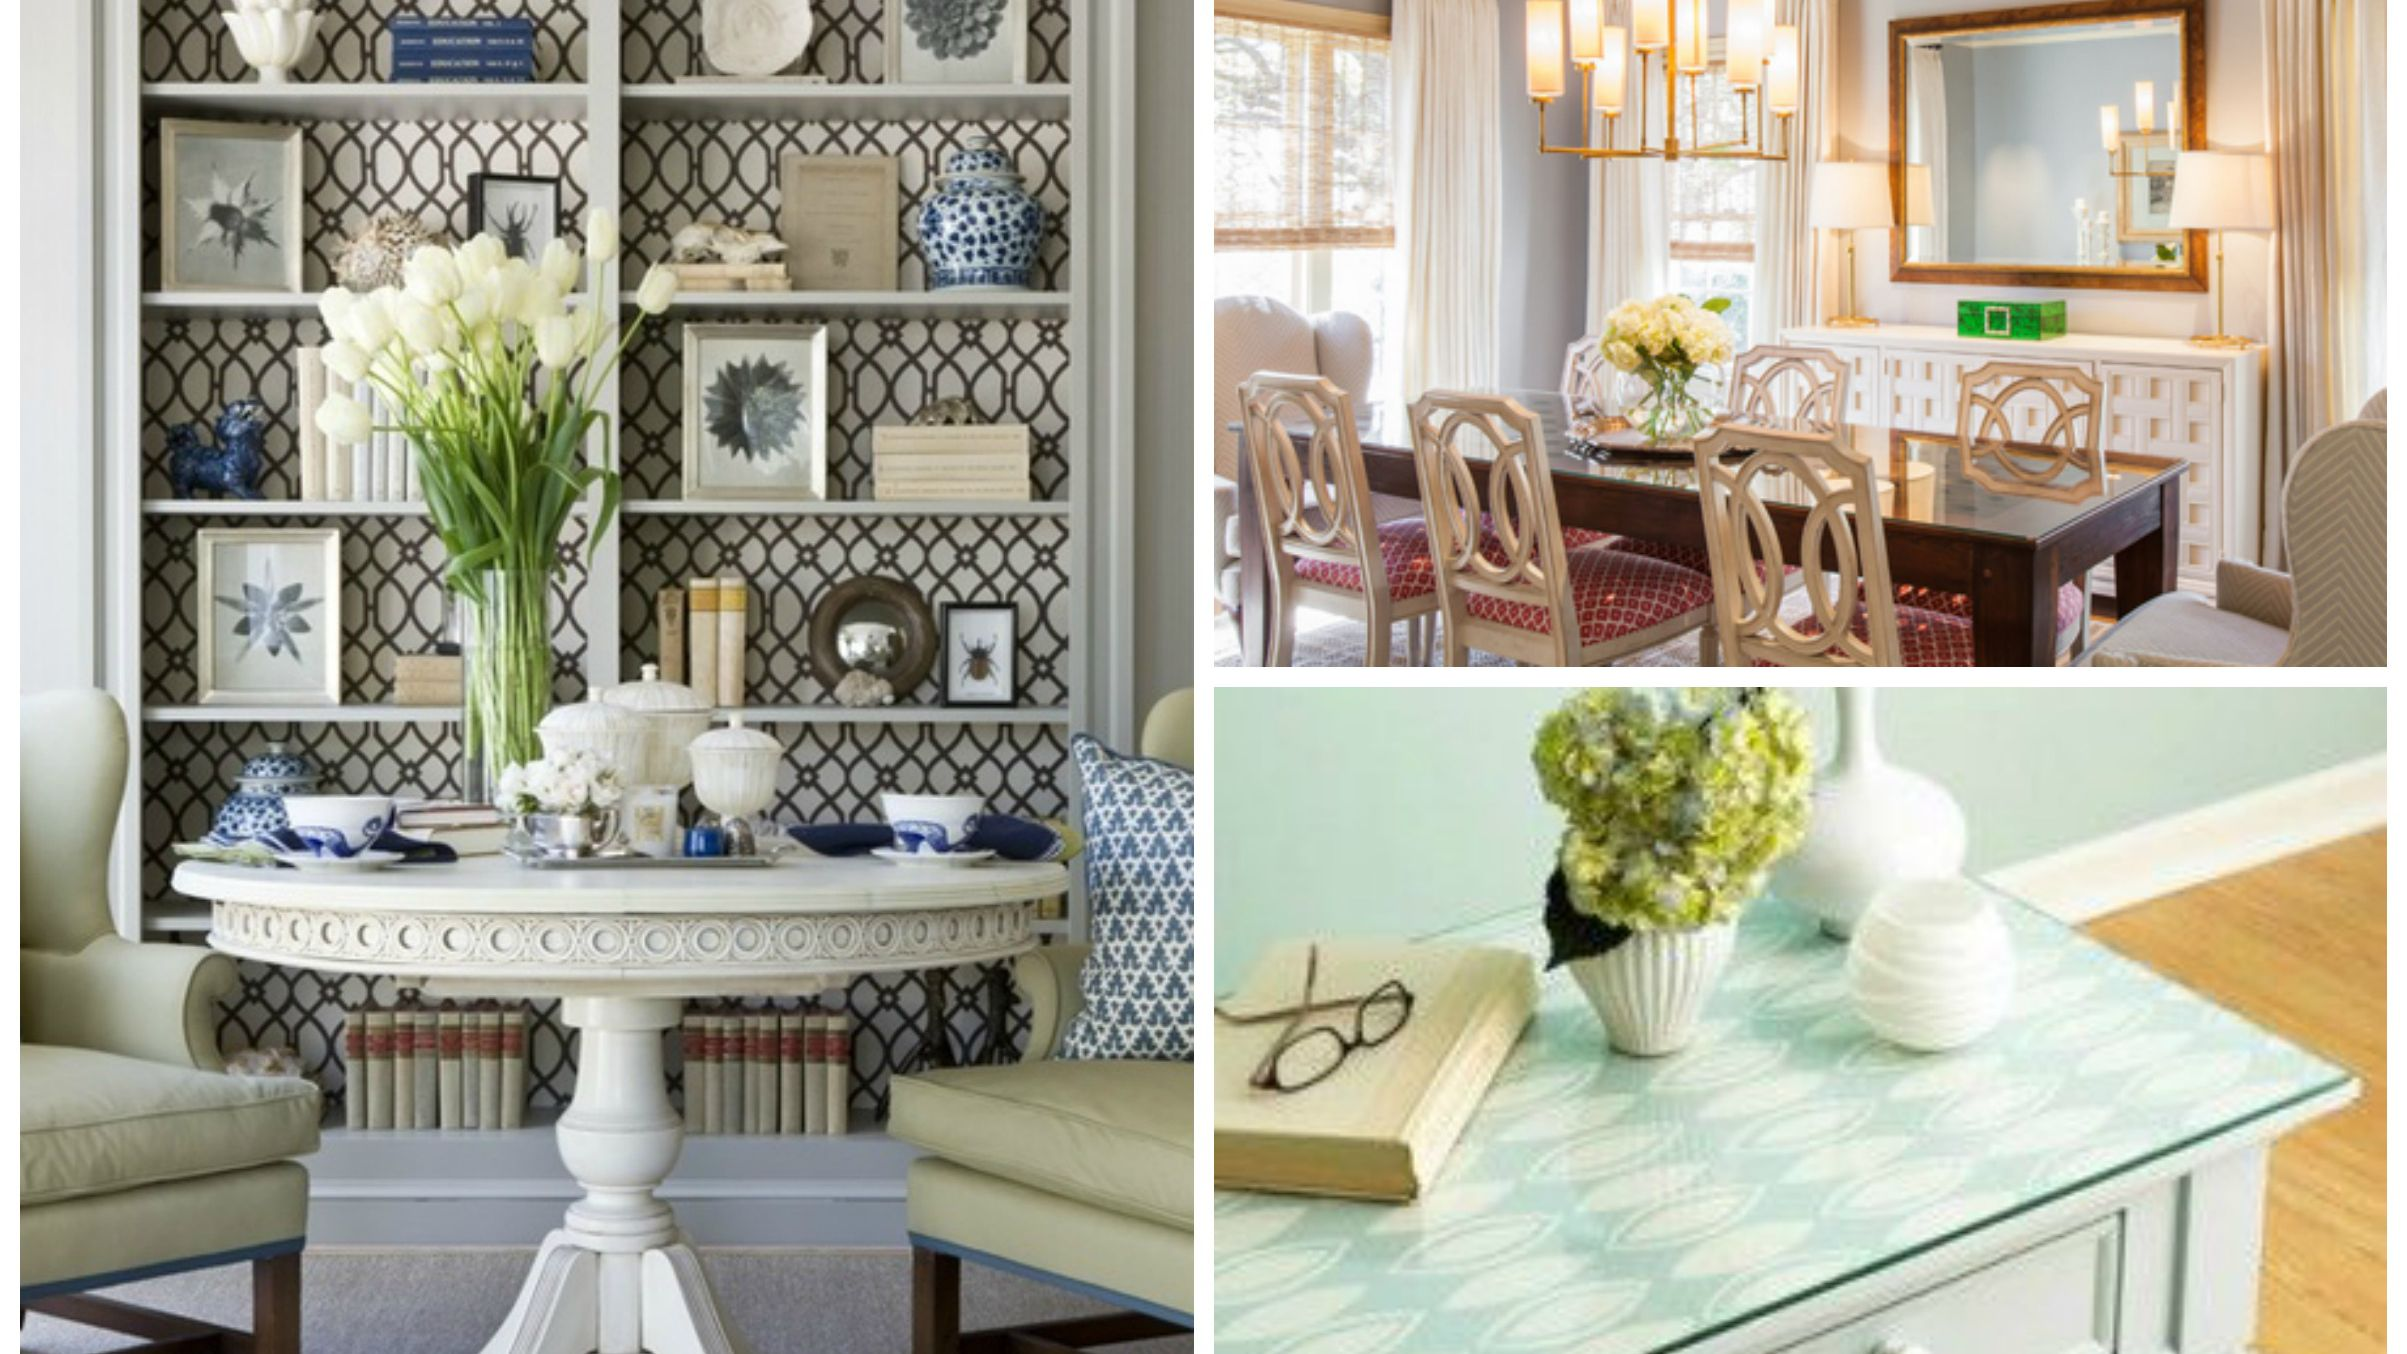 9 Ways To Use Wallpaper In A Living Room,Stem Engineering And Design Process